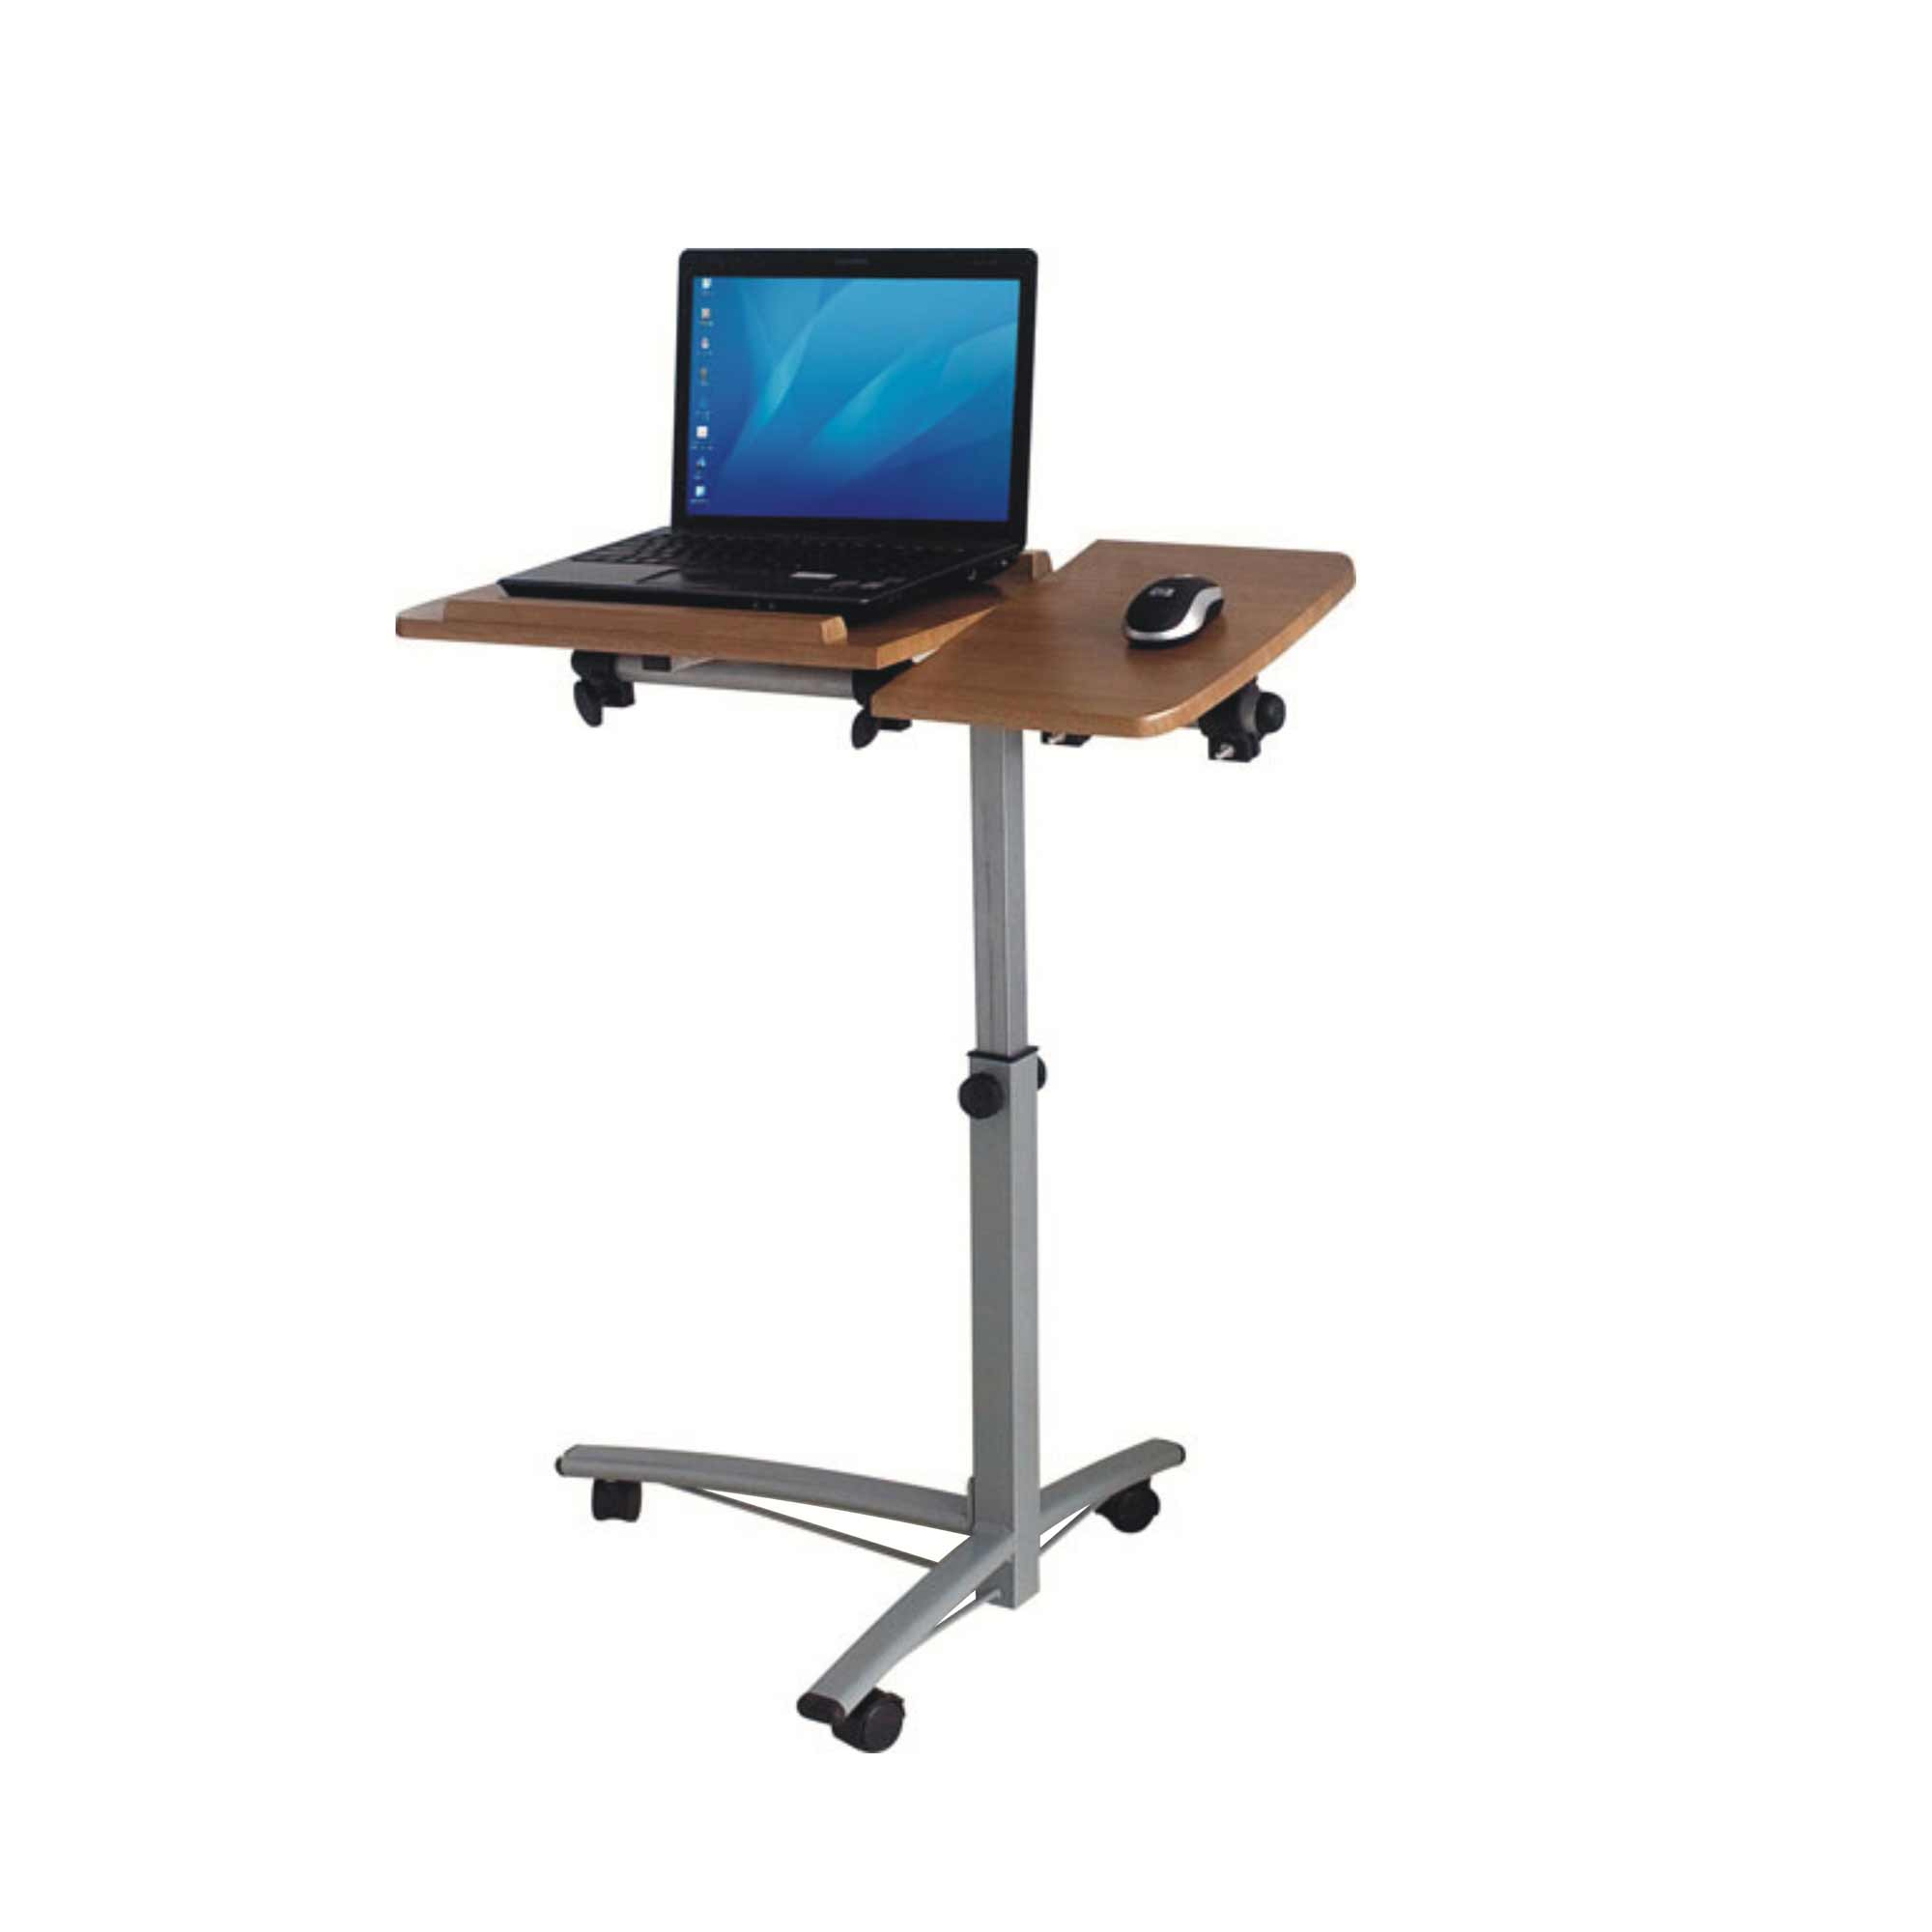 Portable home office laptop stands